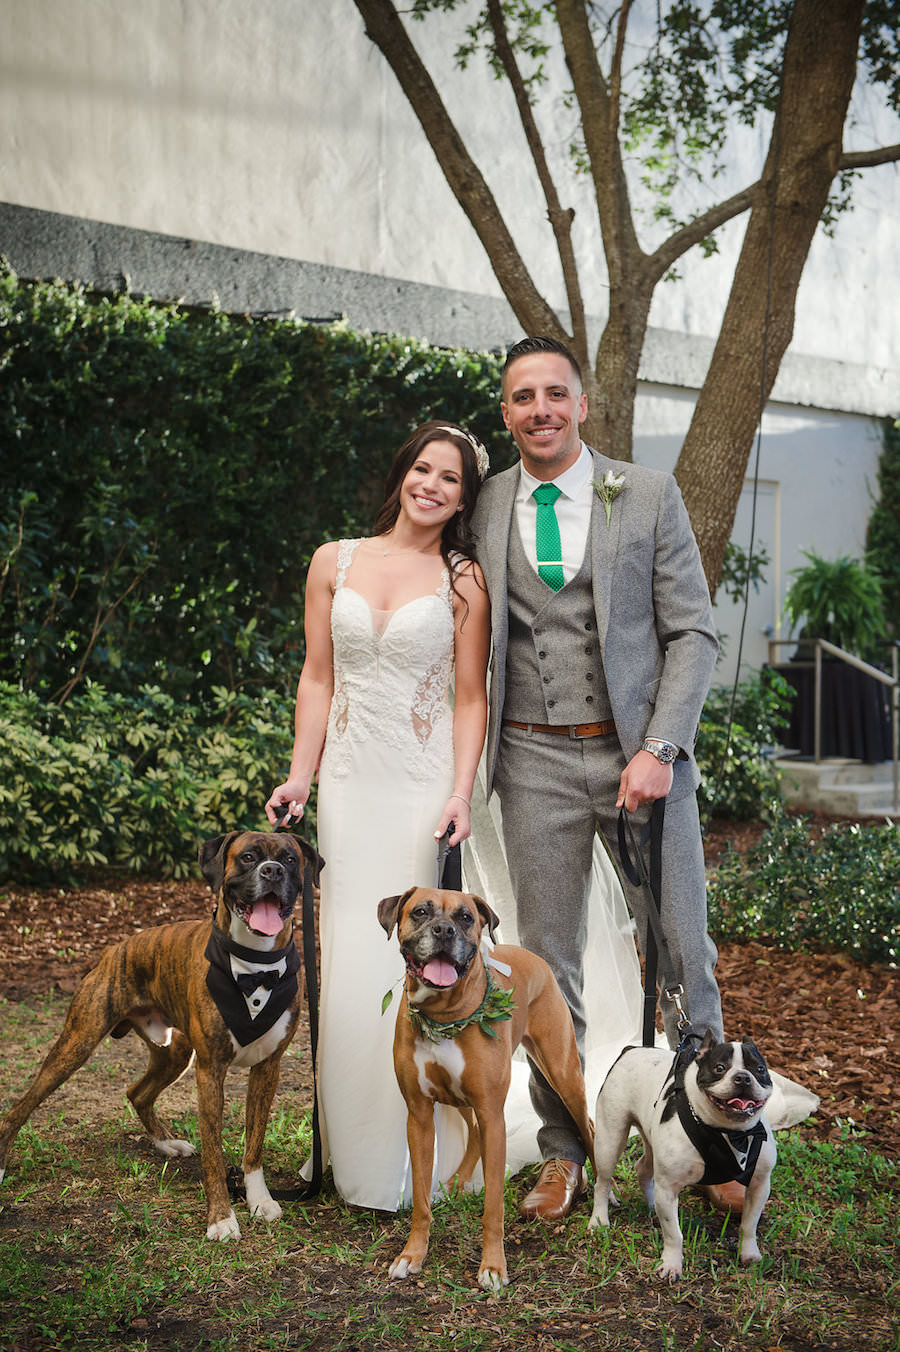 Bride and Groom with Dogs in Tuxedo/Pets Wedding Portrait | Tampa Bay Wedding Photographer Marc Edwards Photographs